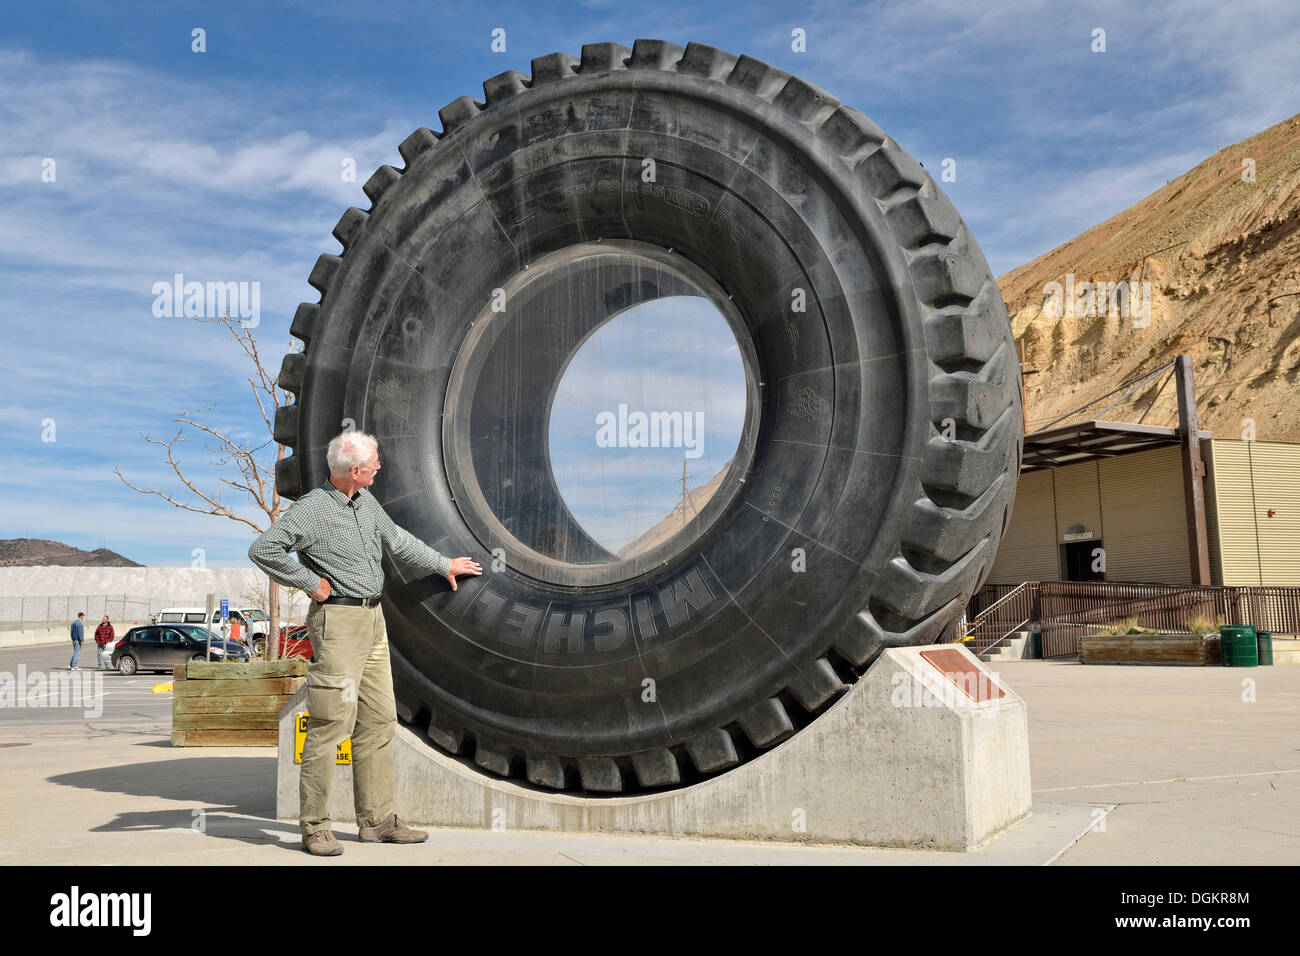 Giant tyre of a haul truck, tyre for heavy trucks and mining vehicles, visitor centre, Kennecott Utah Copper's Bingham Canyon - Stock Image